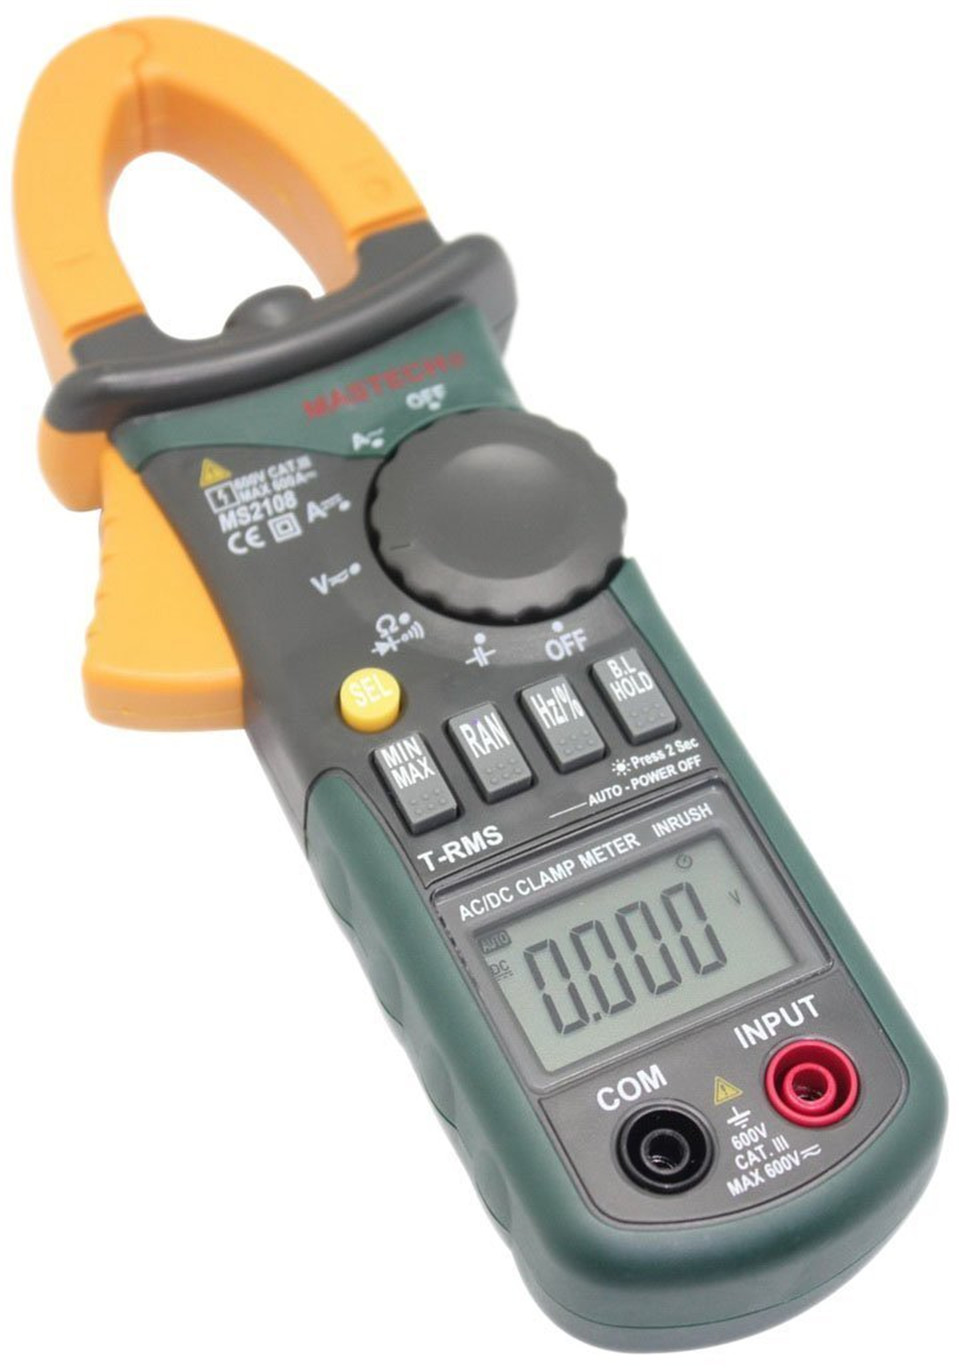 2017 New Mastech MS2108 Digital Clamp Meter True RMS LCD Multimeter AC DC Voltmeter Ammeter Ohm Herz. Duty Cycle Multi Tester 2108